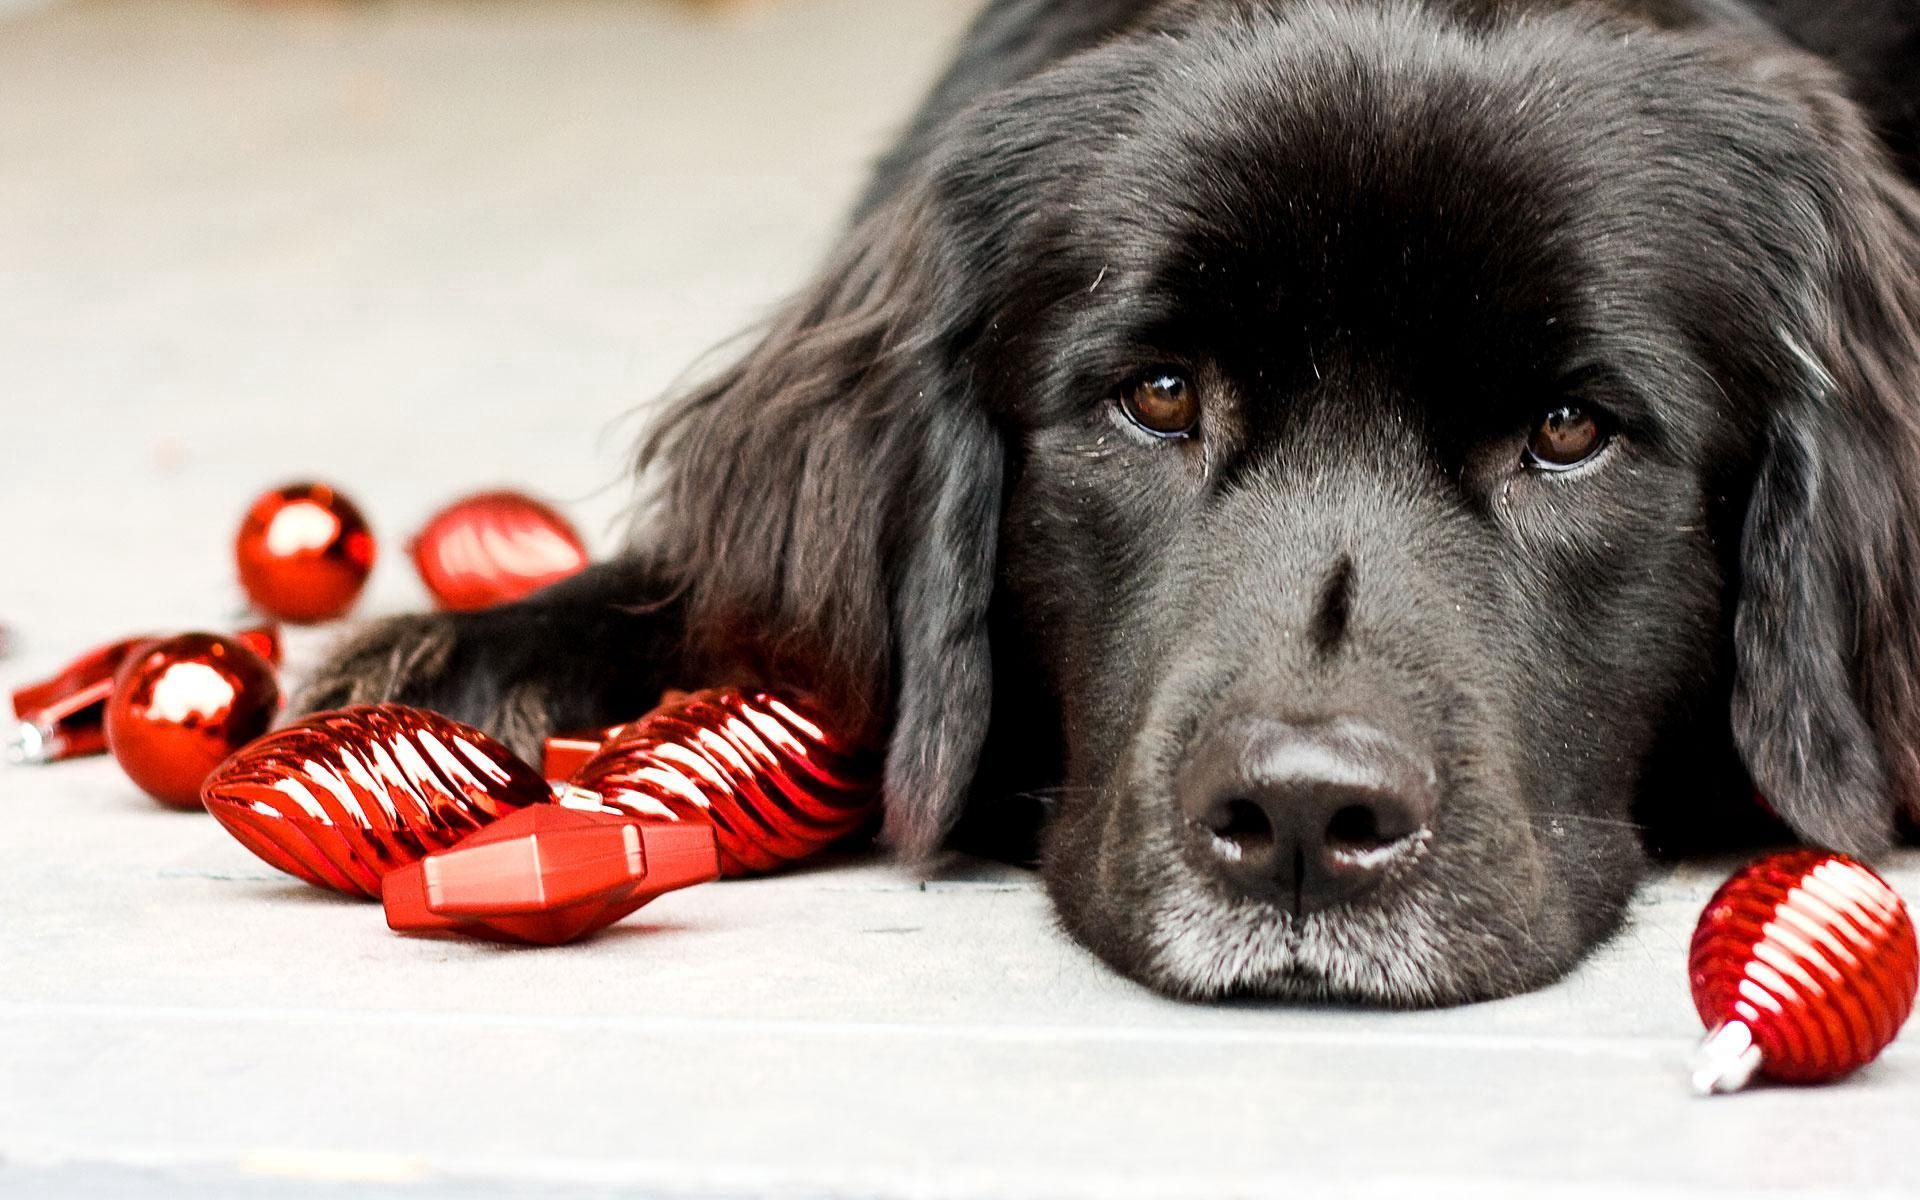 141543 download wallpaper Animals, Puppy, Toy, To Lie Down, Lie, Muzzle screensavers and pictures for free